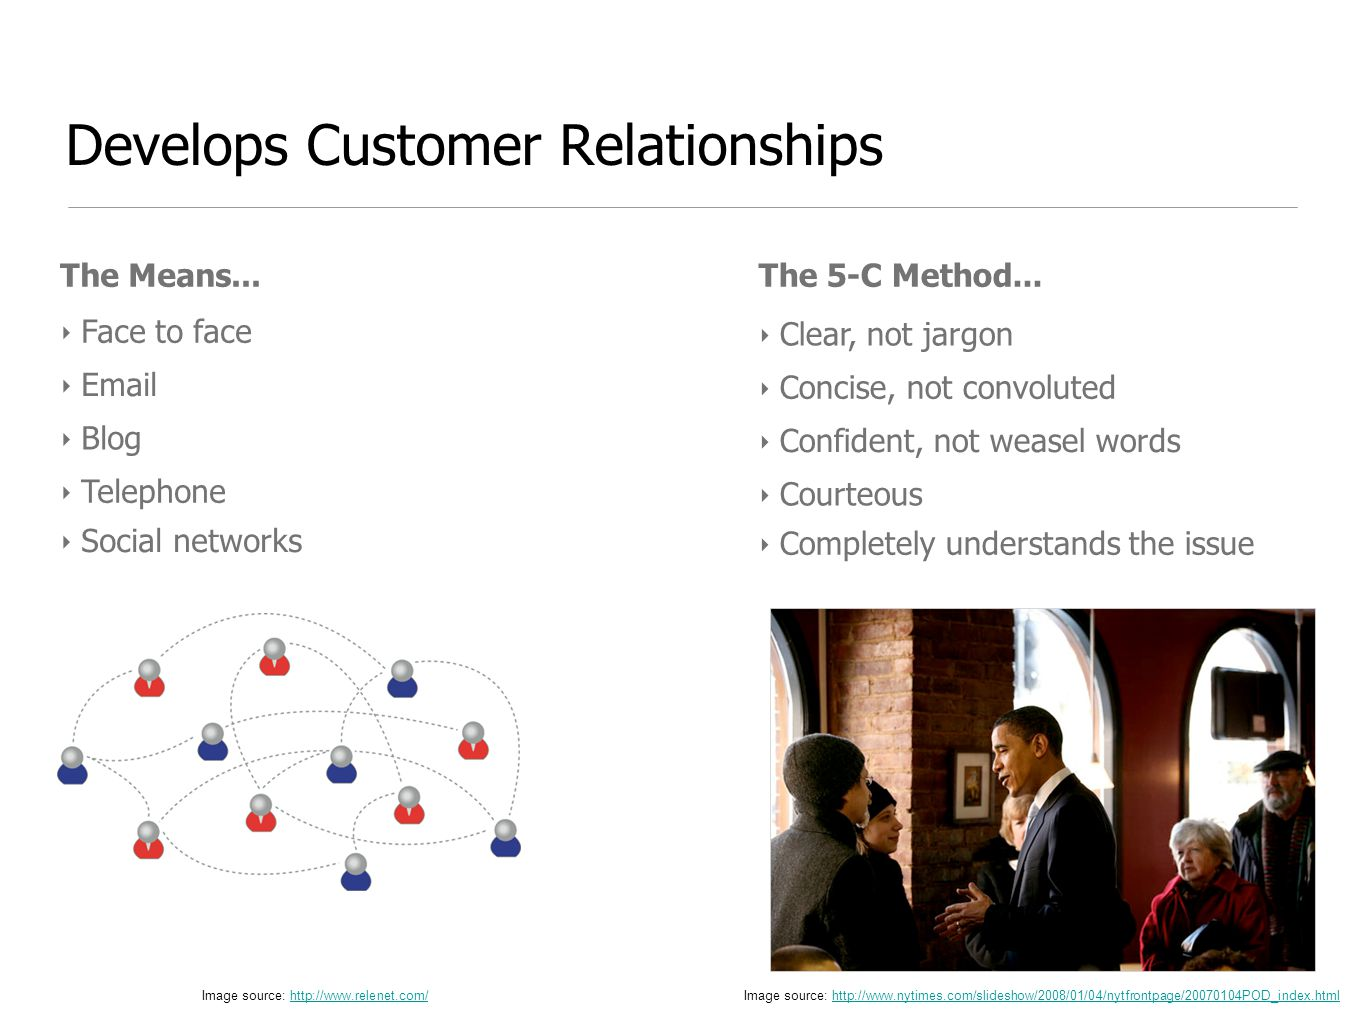 Develops Customer Relationships